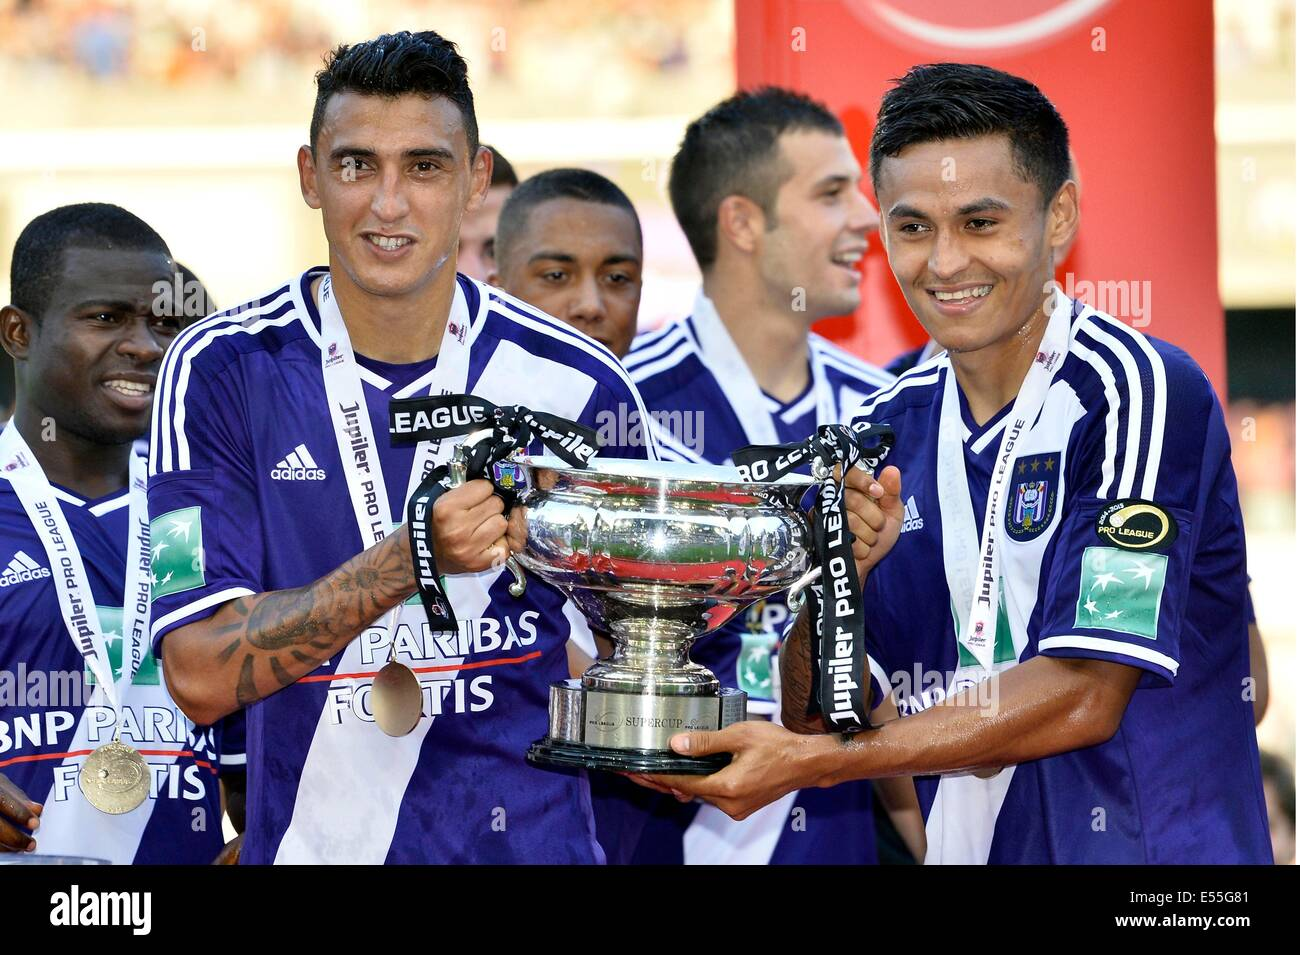 Brussels Belgium 20th July 2014 Super Cup Final Of The Belgian Stock Photo Alamy